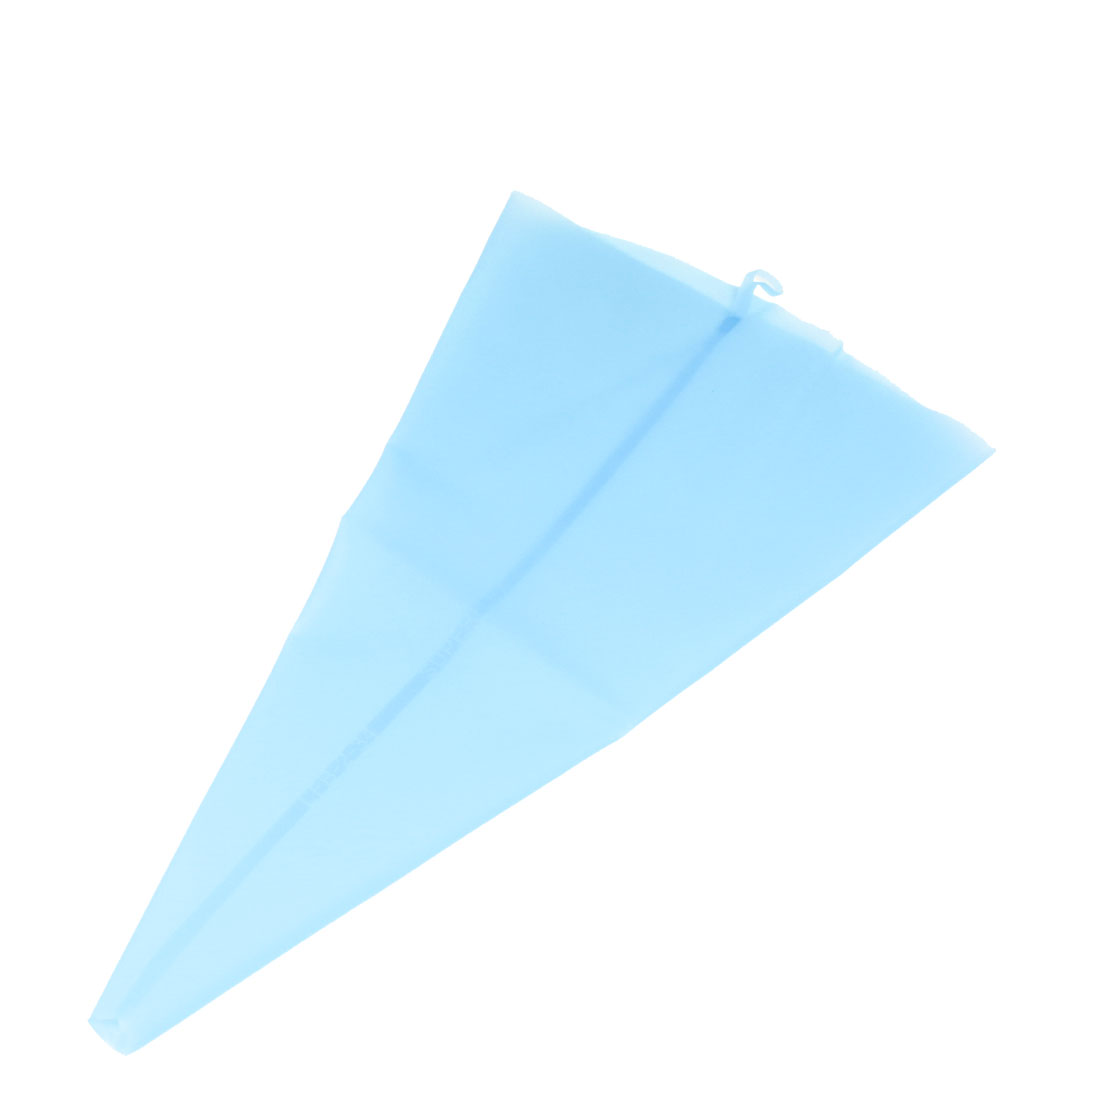 Cyan Plastic 34cm Length Pastry Piping Bag for Cake Bread Toast Making